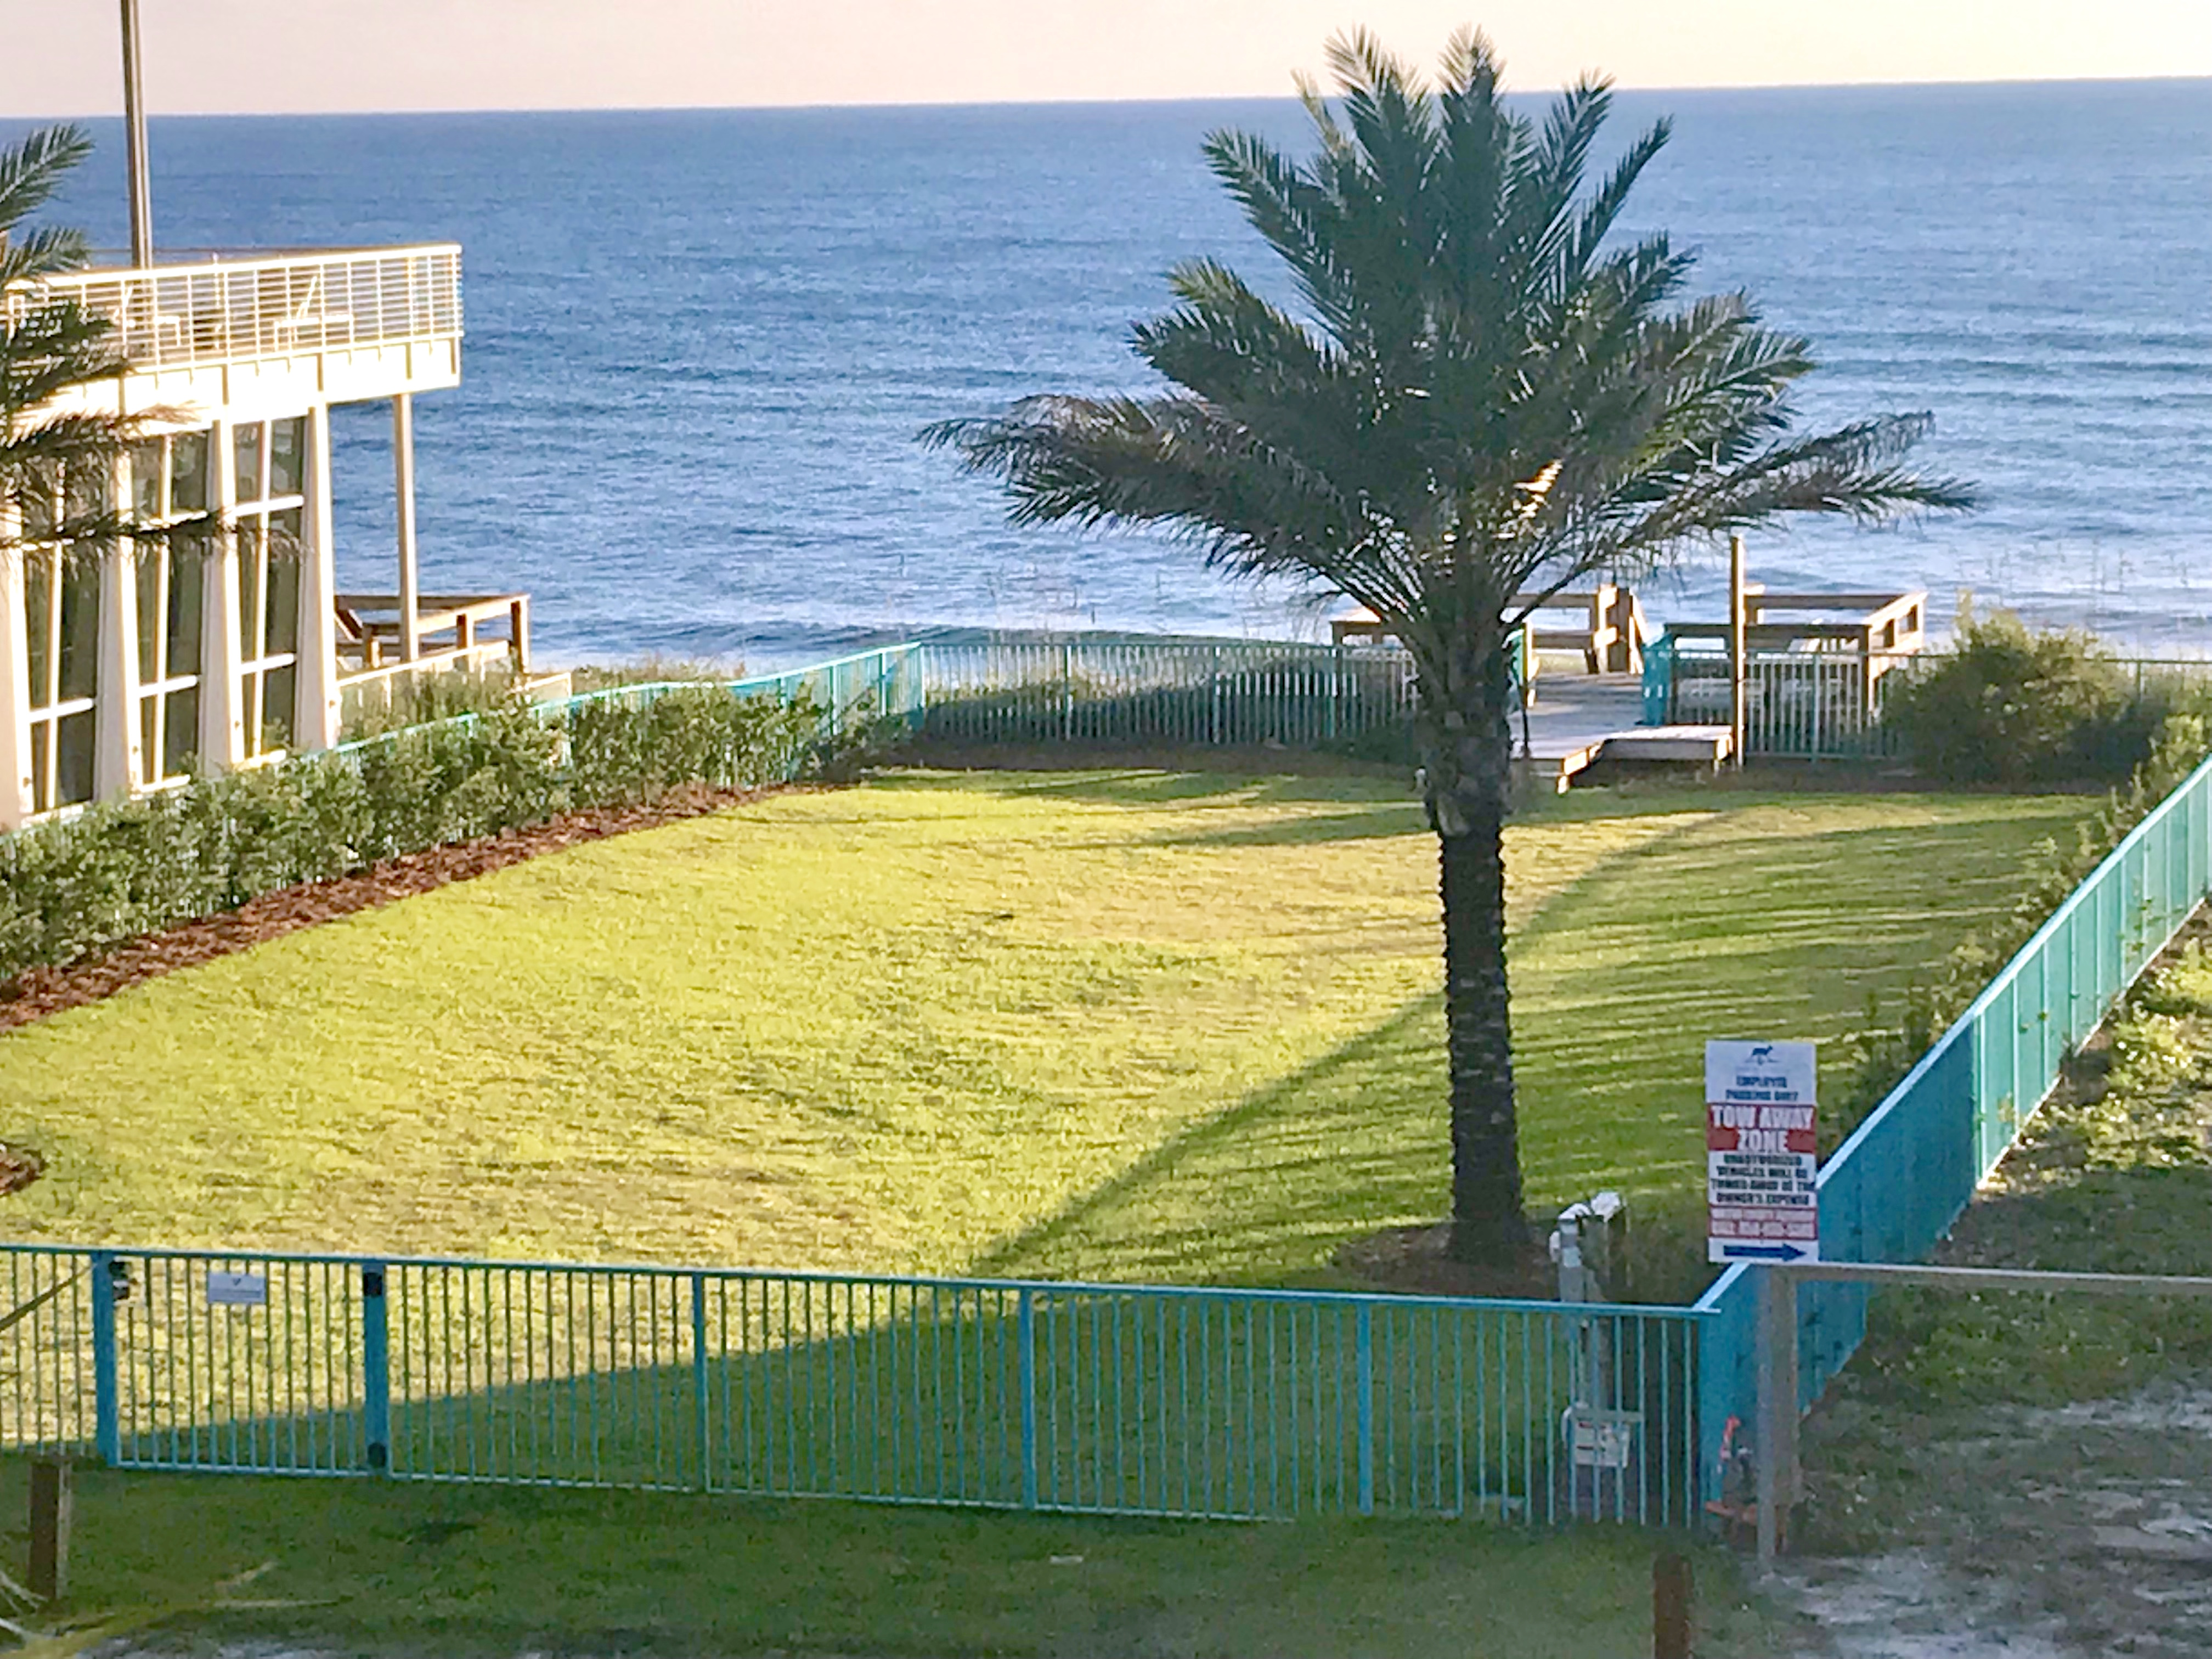 The Viridian has a wonderful, private green space with gated entry to their dune walkover